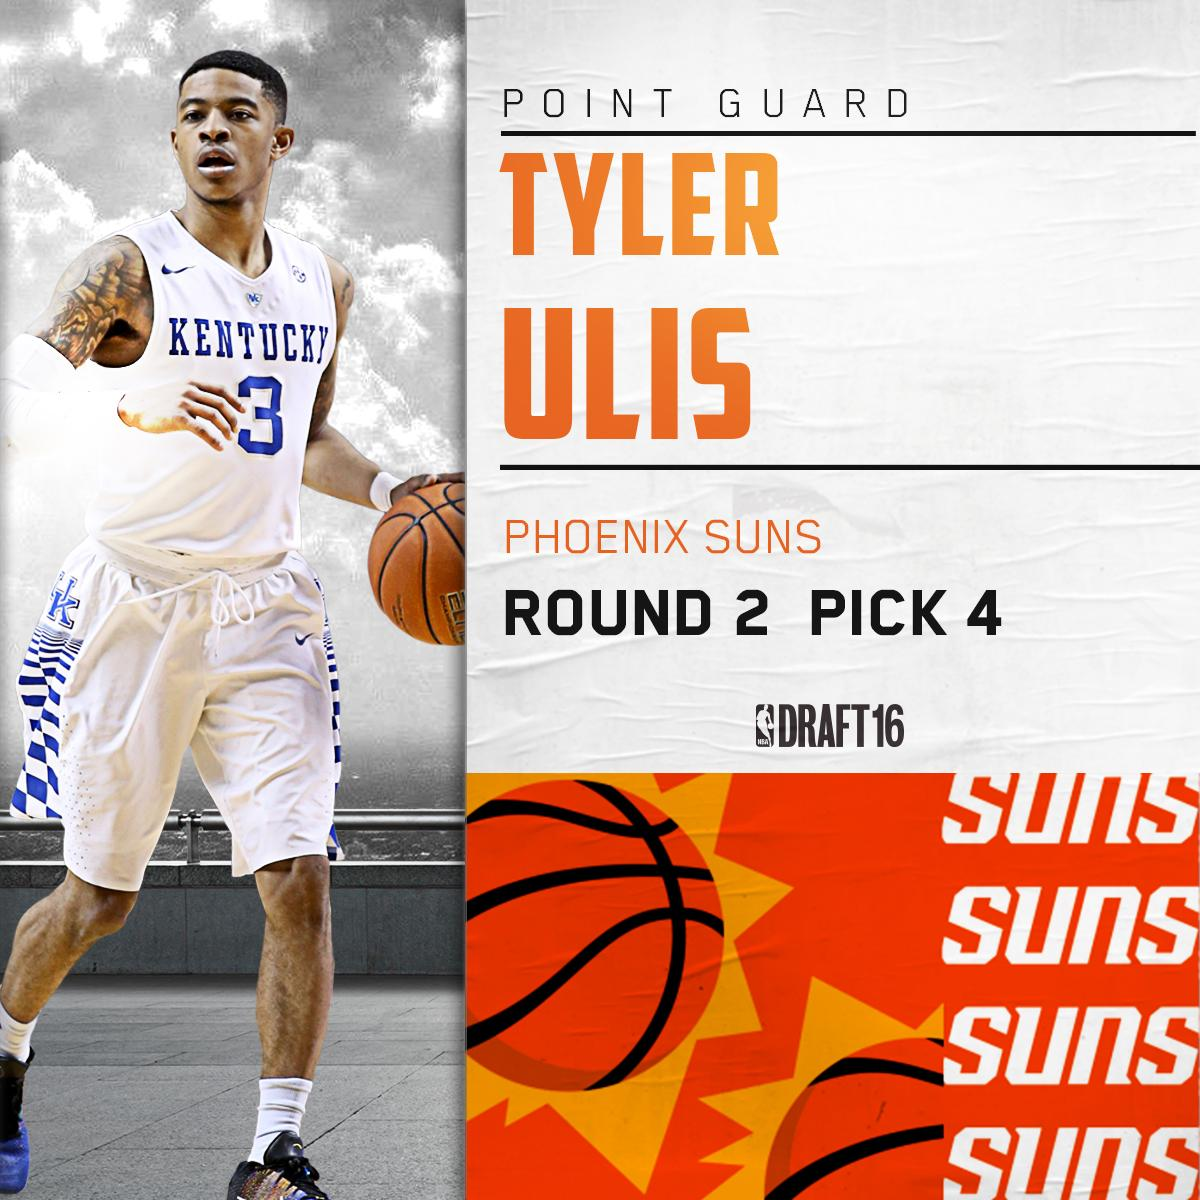 631c07ce9ef ... ulis tyler 8 jersey uk Never miss a Moment ...